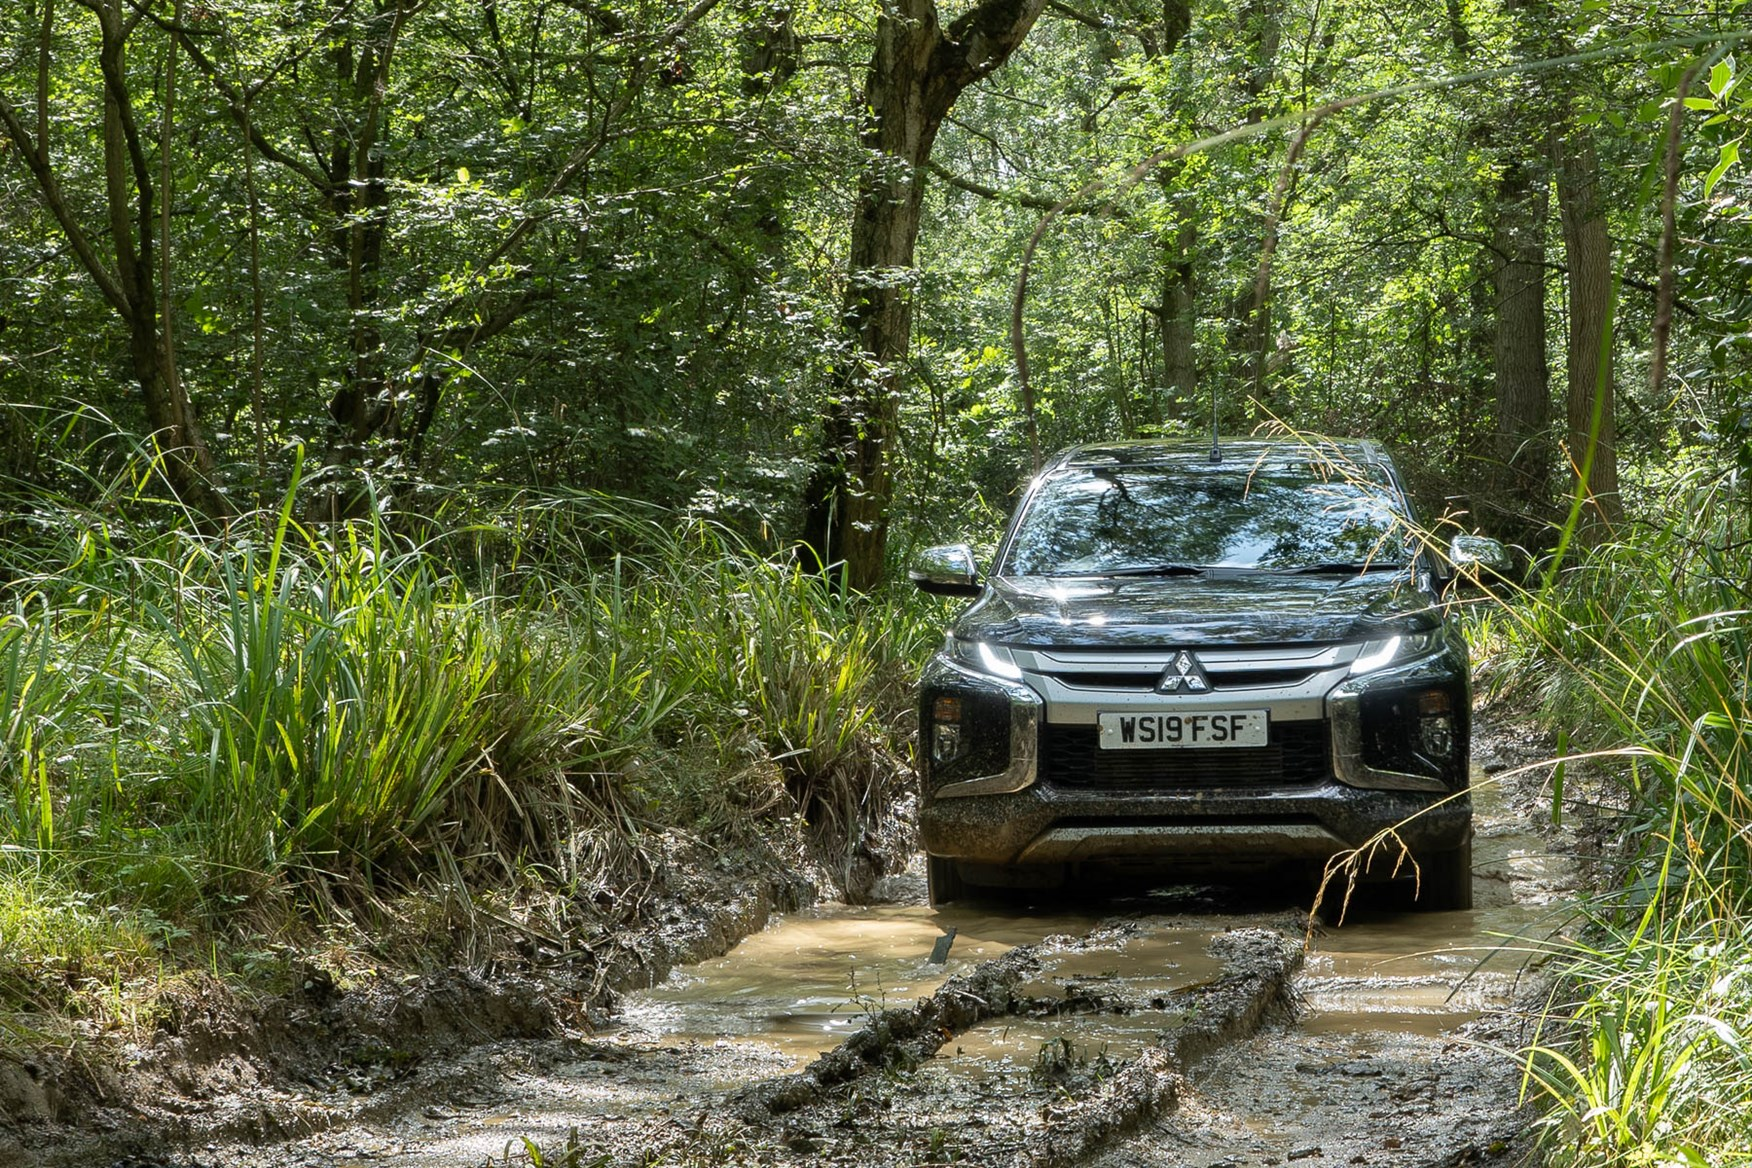 2019 Mitsubishi L200 4x4, Jet Black, on muddy forest track